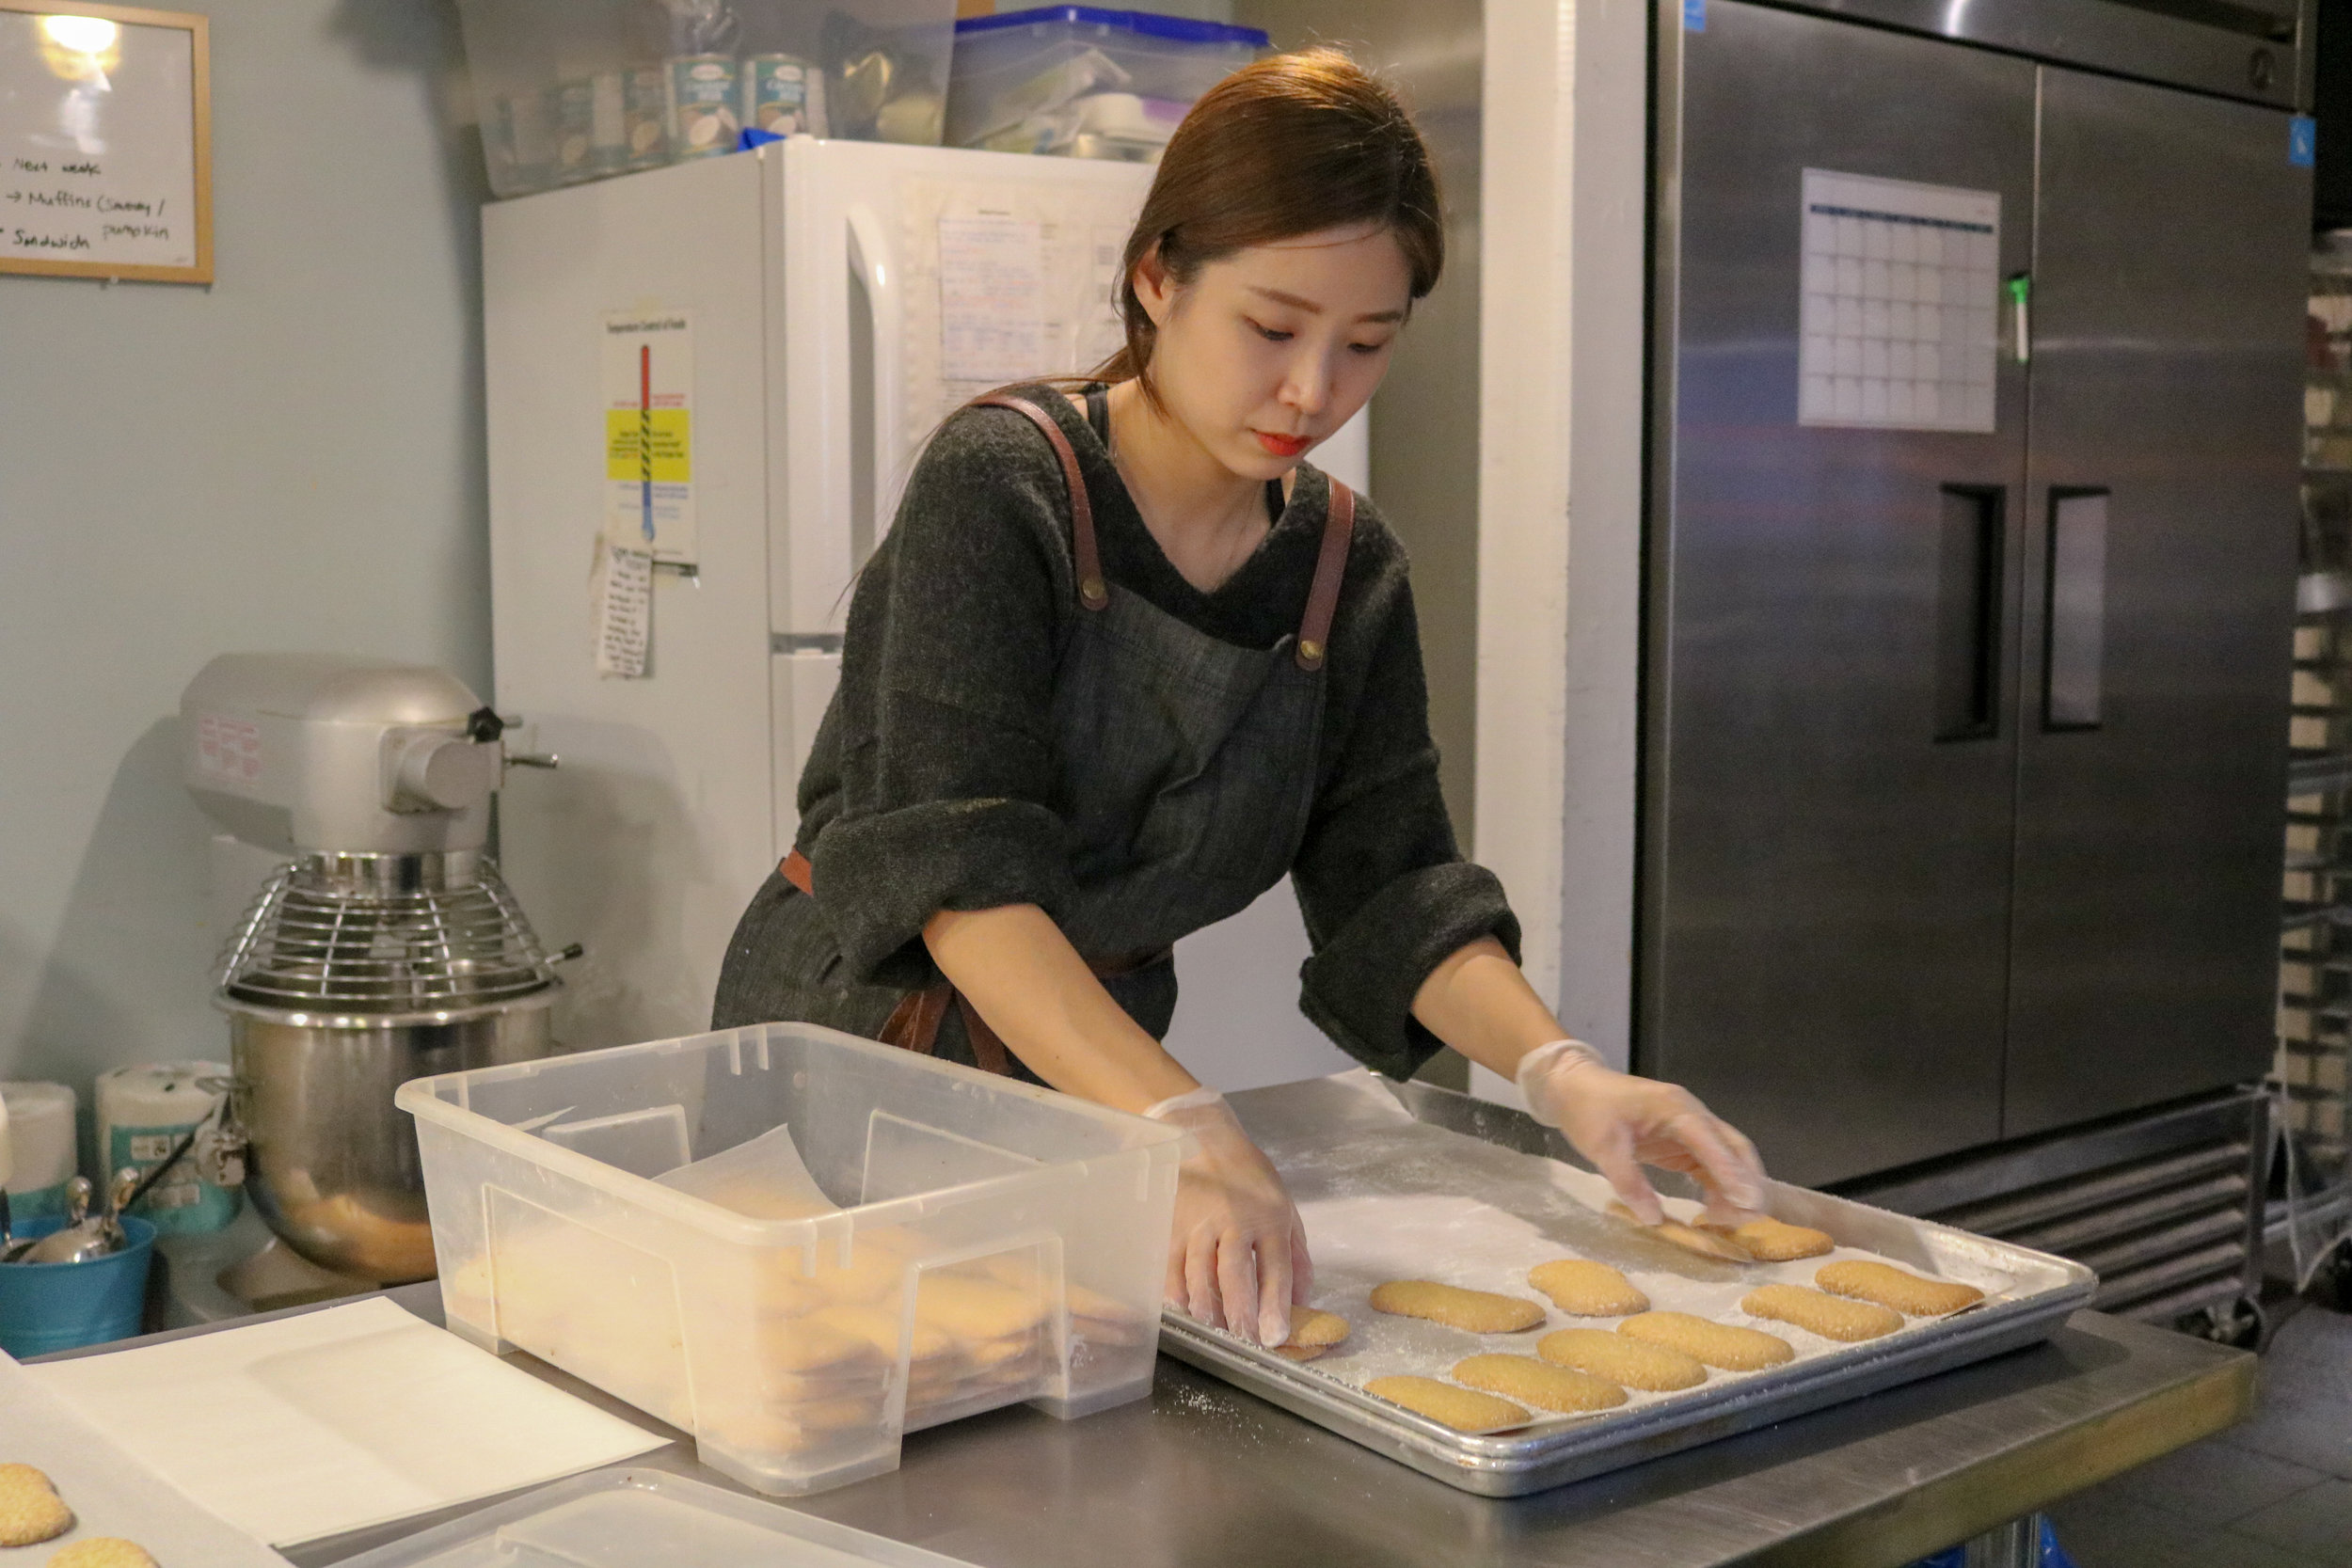 Fresh pastries are made in-house at De Mello's